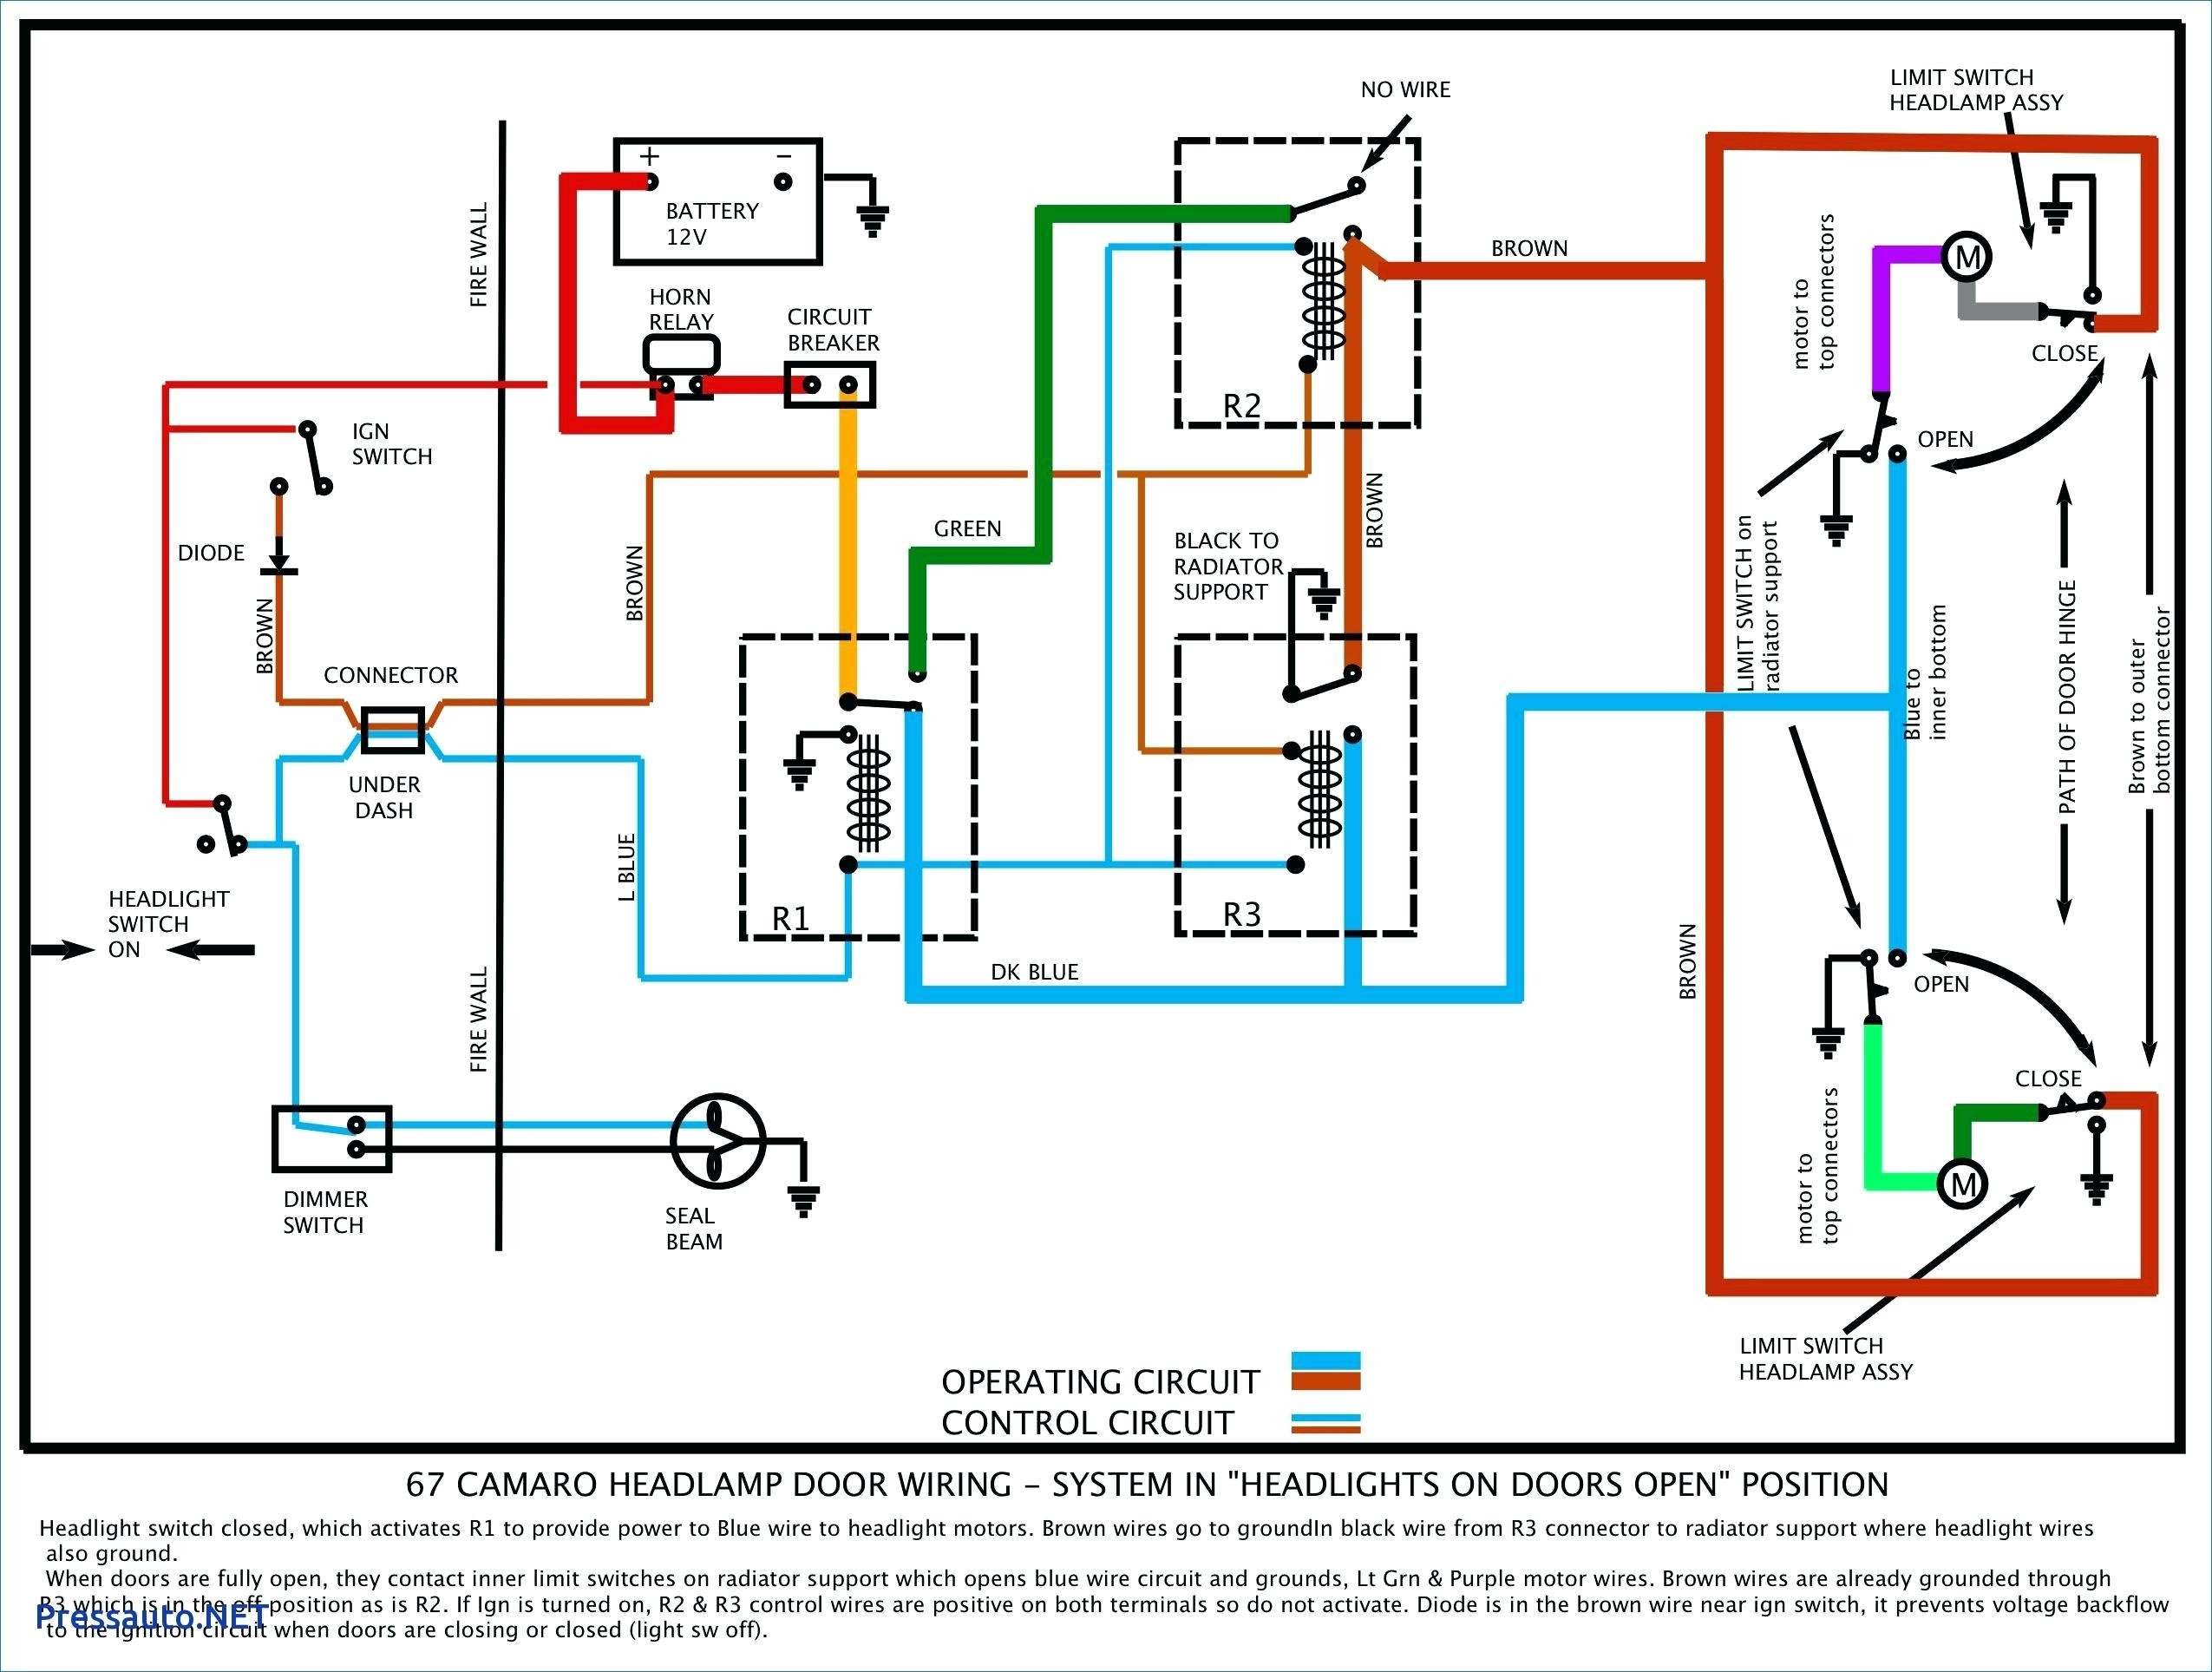 Terrific Firestik Wiring Diagram Wiring Diagram Wiring Cloud Usnesfoxcilixyz